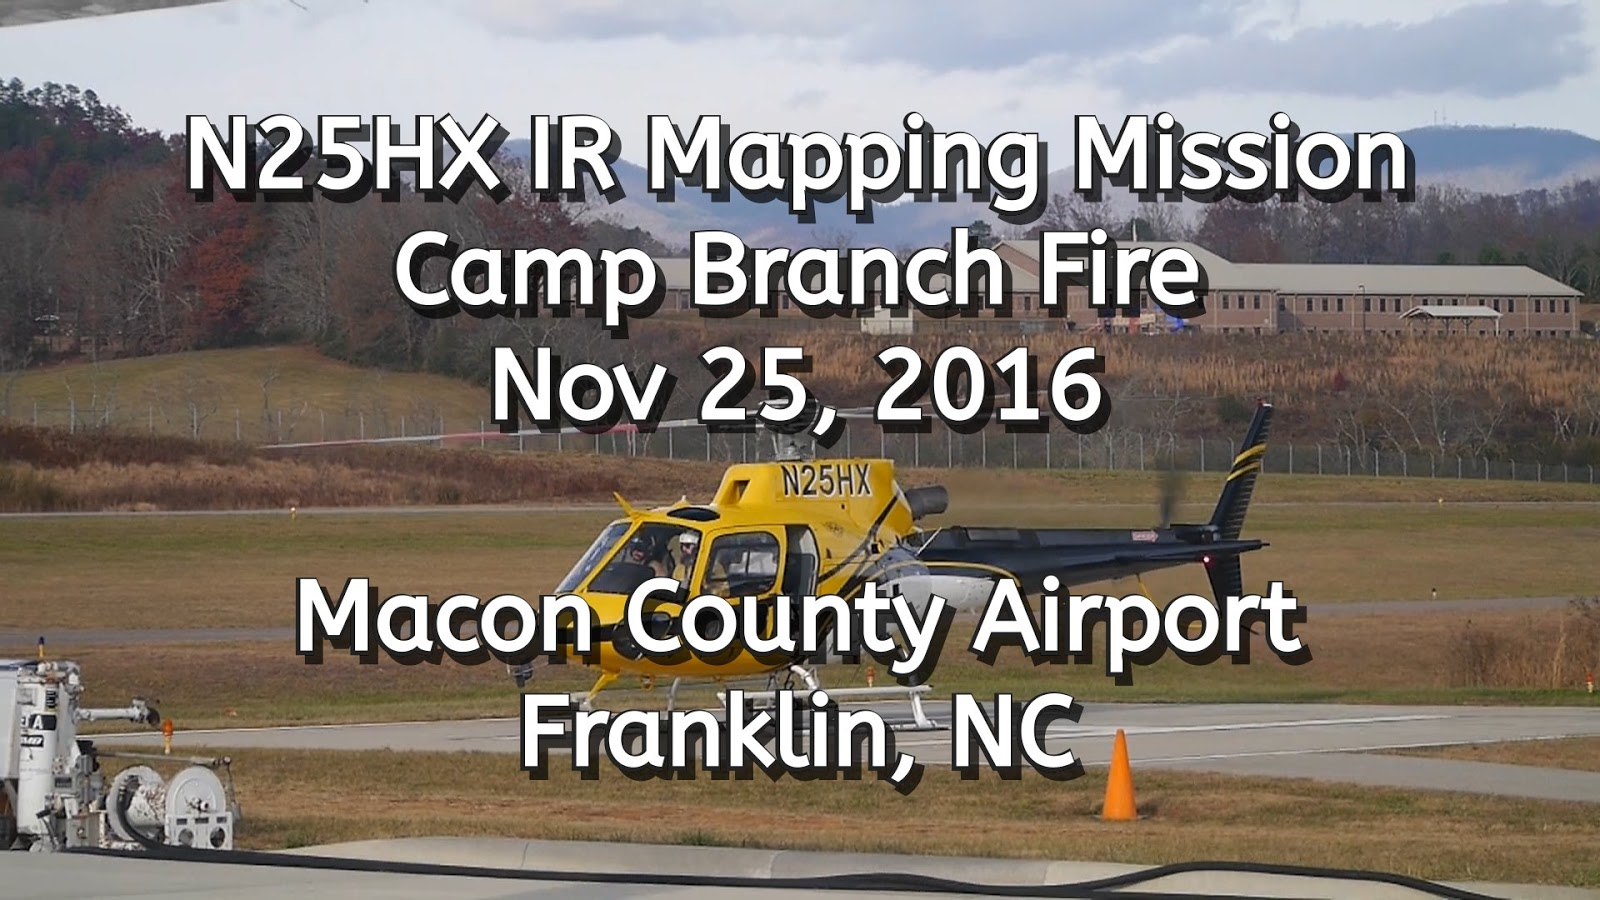 N25HX IR Mapping Mission on the Camp Branch Fire